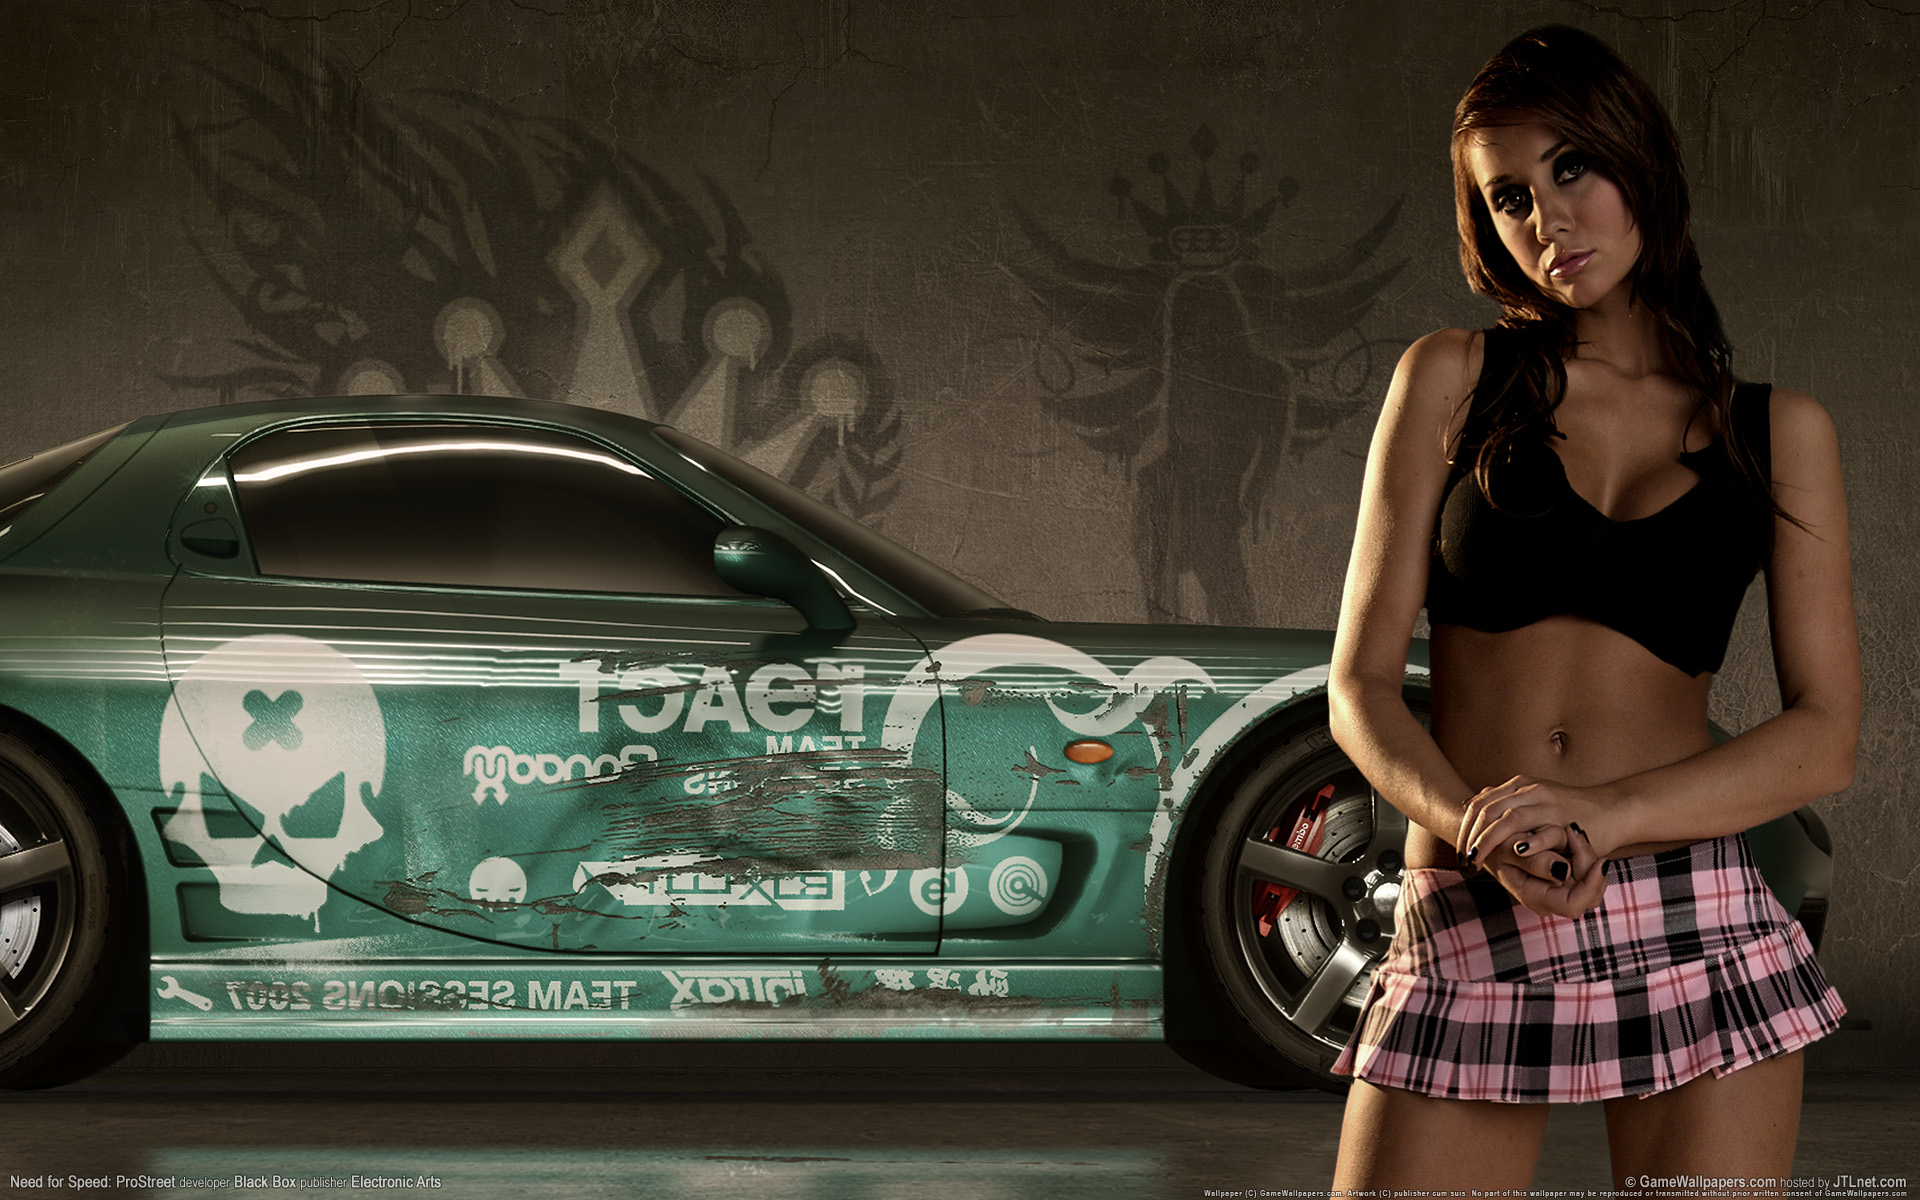 Need For Speed wallpaper   332165 1920x1200